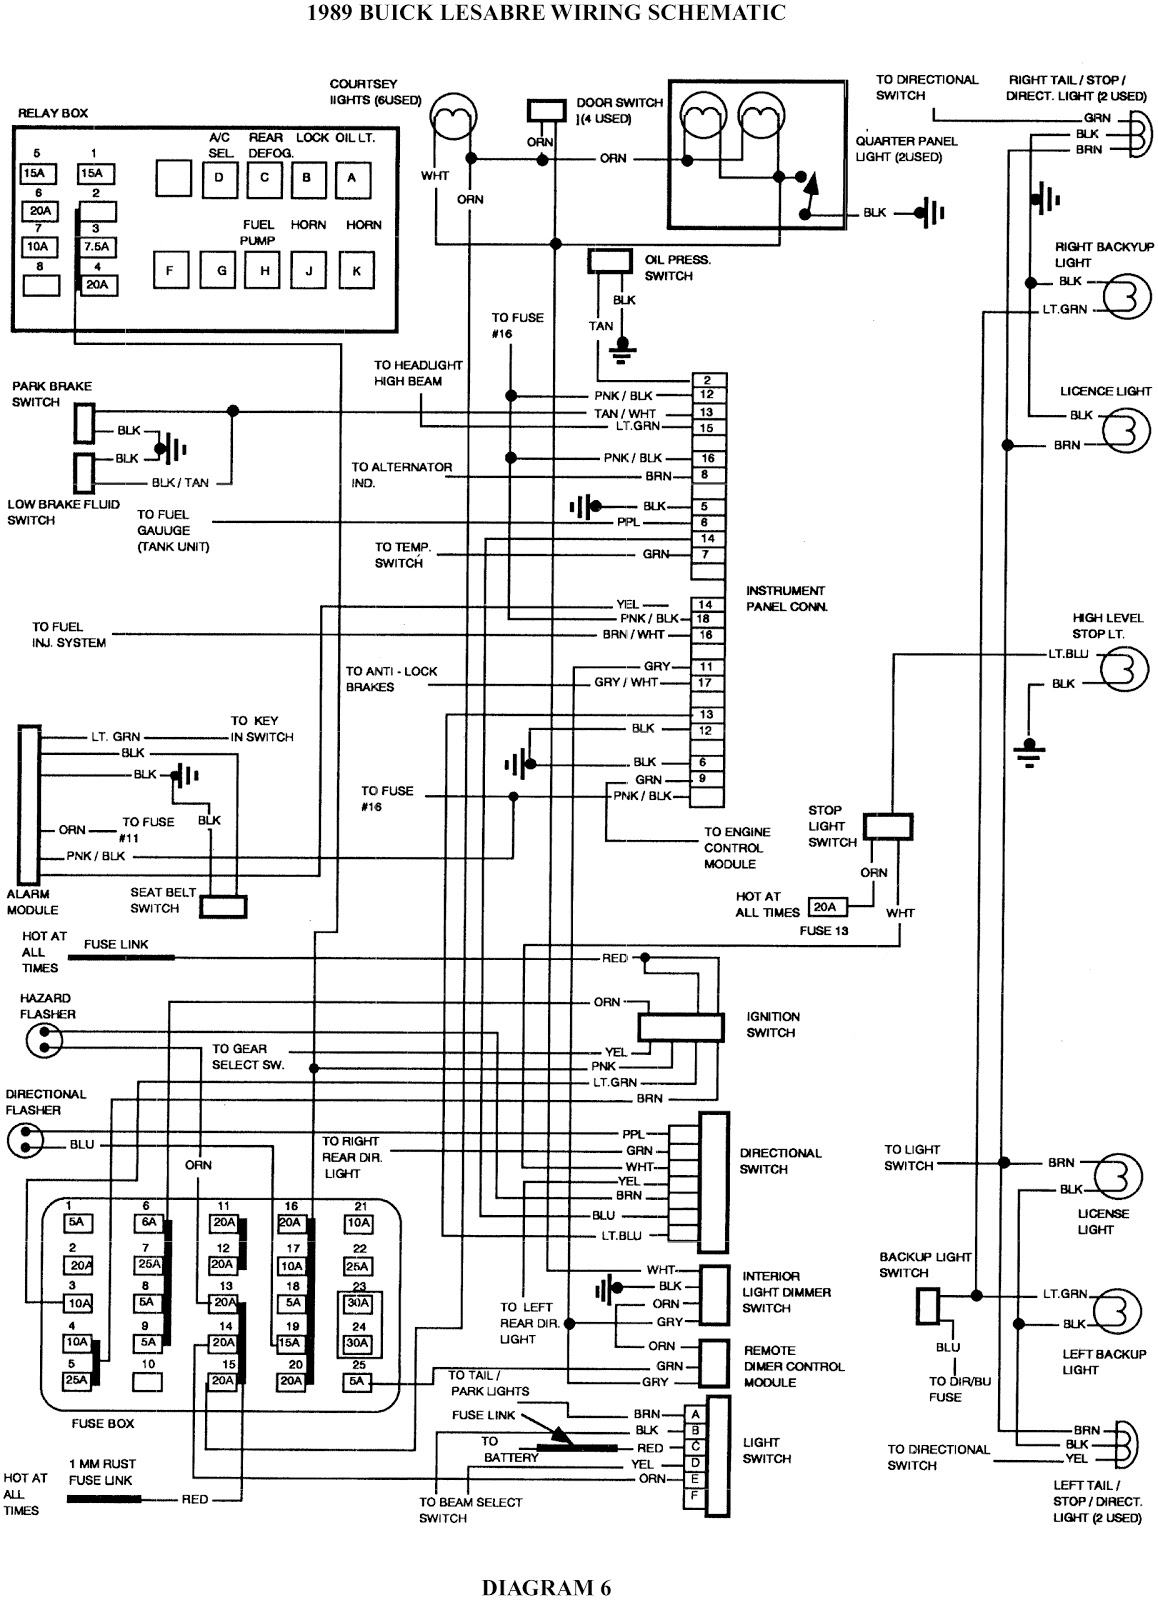 1999 Honda Accord Ecu Wiring Diagram Dollar Bill Origami Flower 1989 Buick Lesabre Schematic | Diagrams Solutions